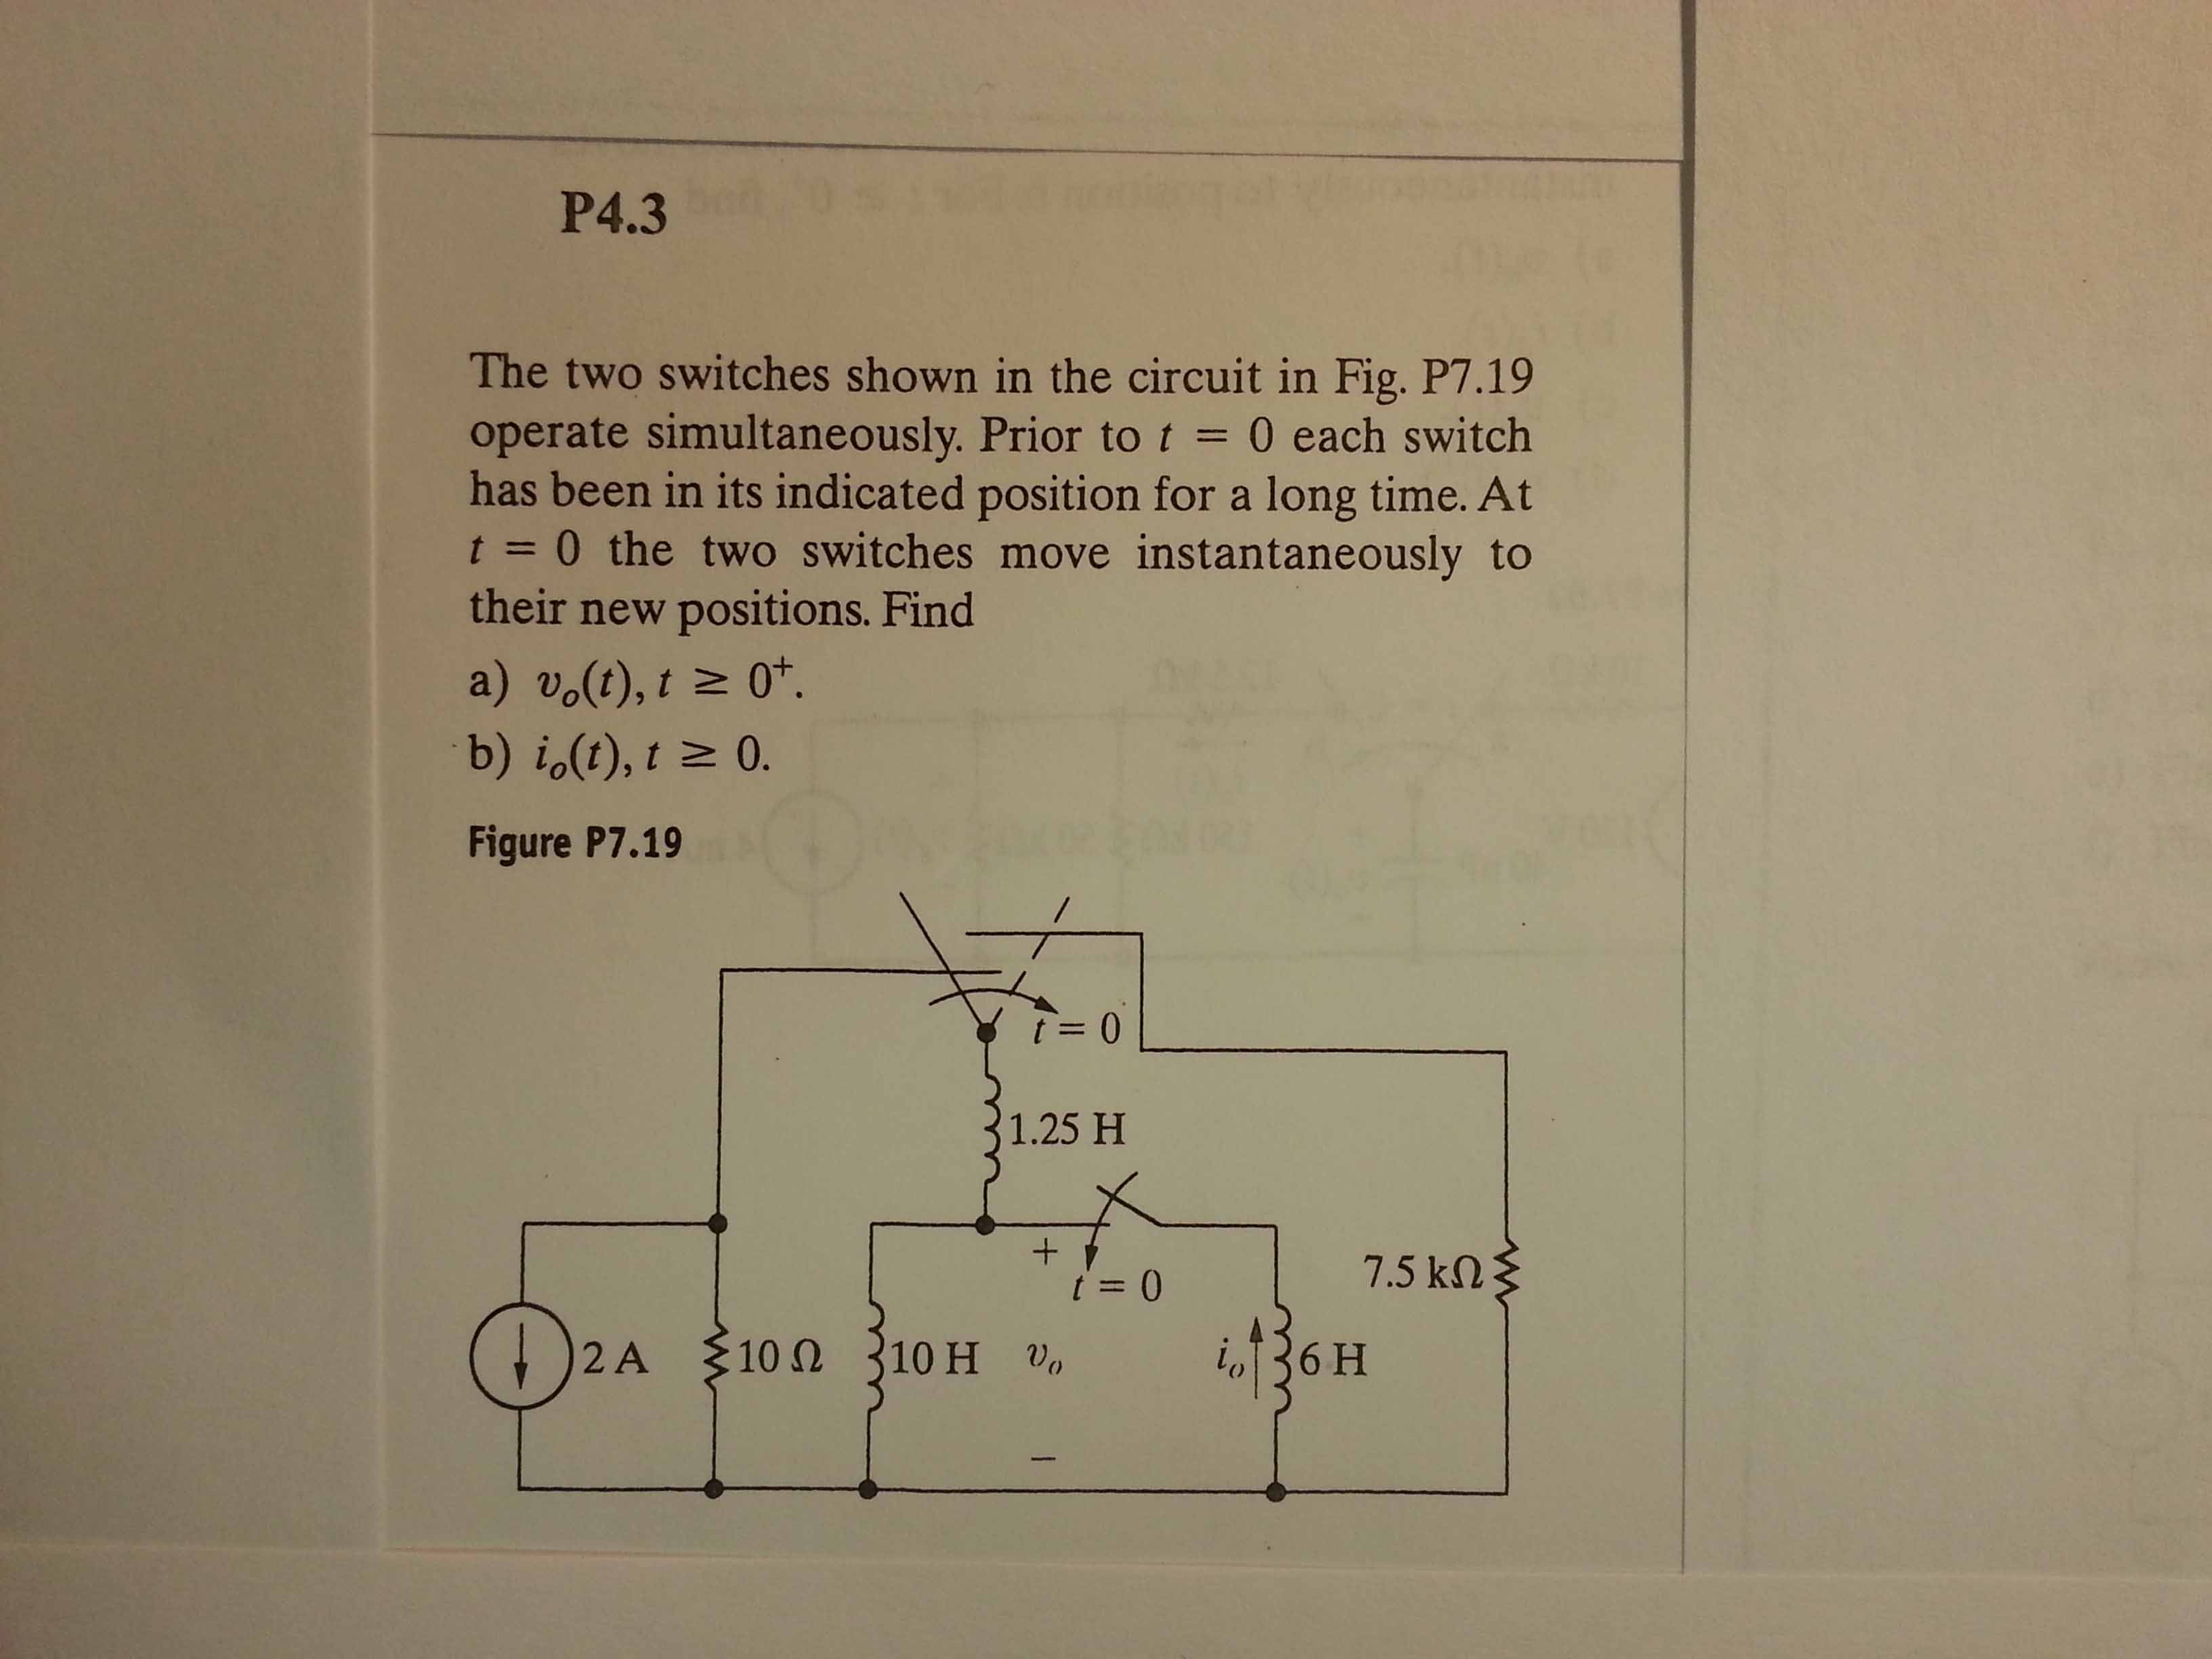 The two switches shown in the circuit in Fig. P7.1